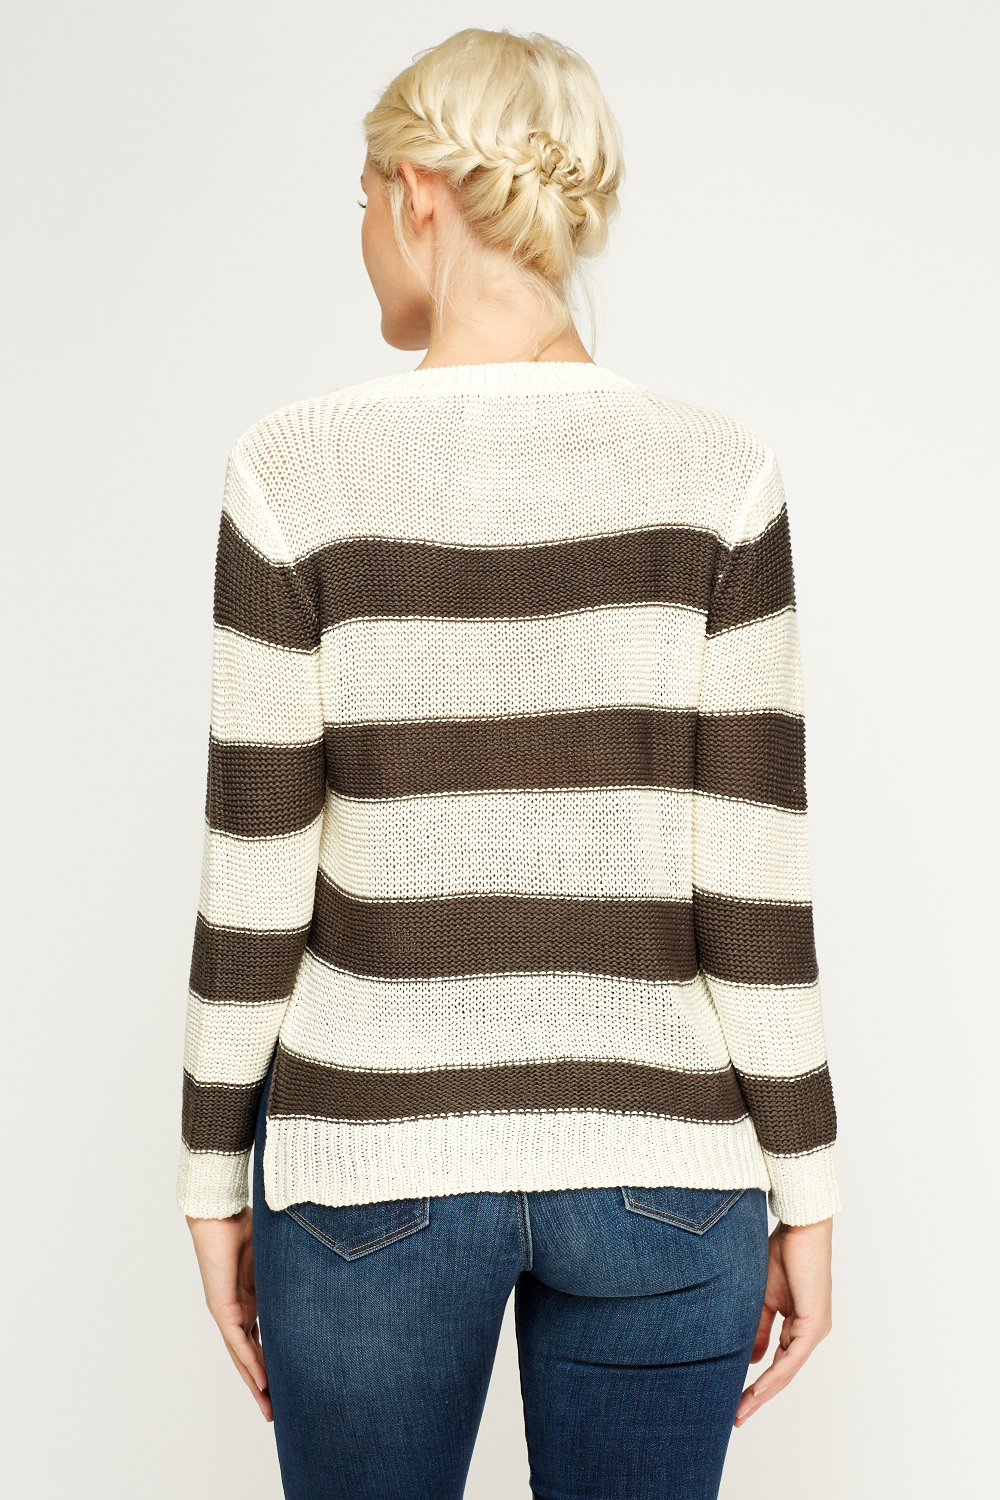 Striped Knit Jumper - 3 Colours - Just ?5